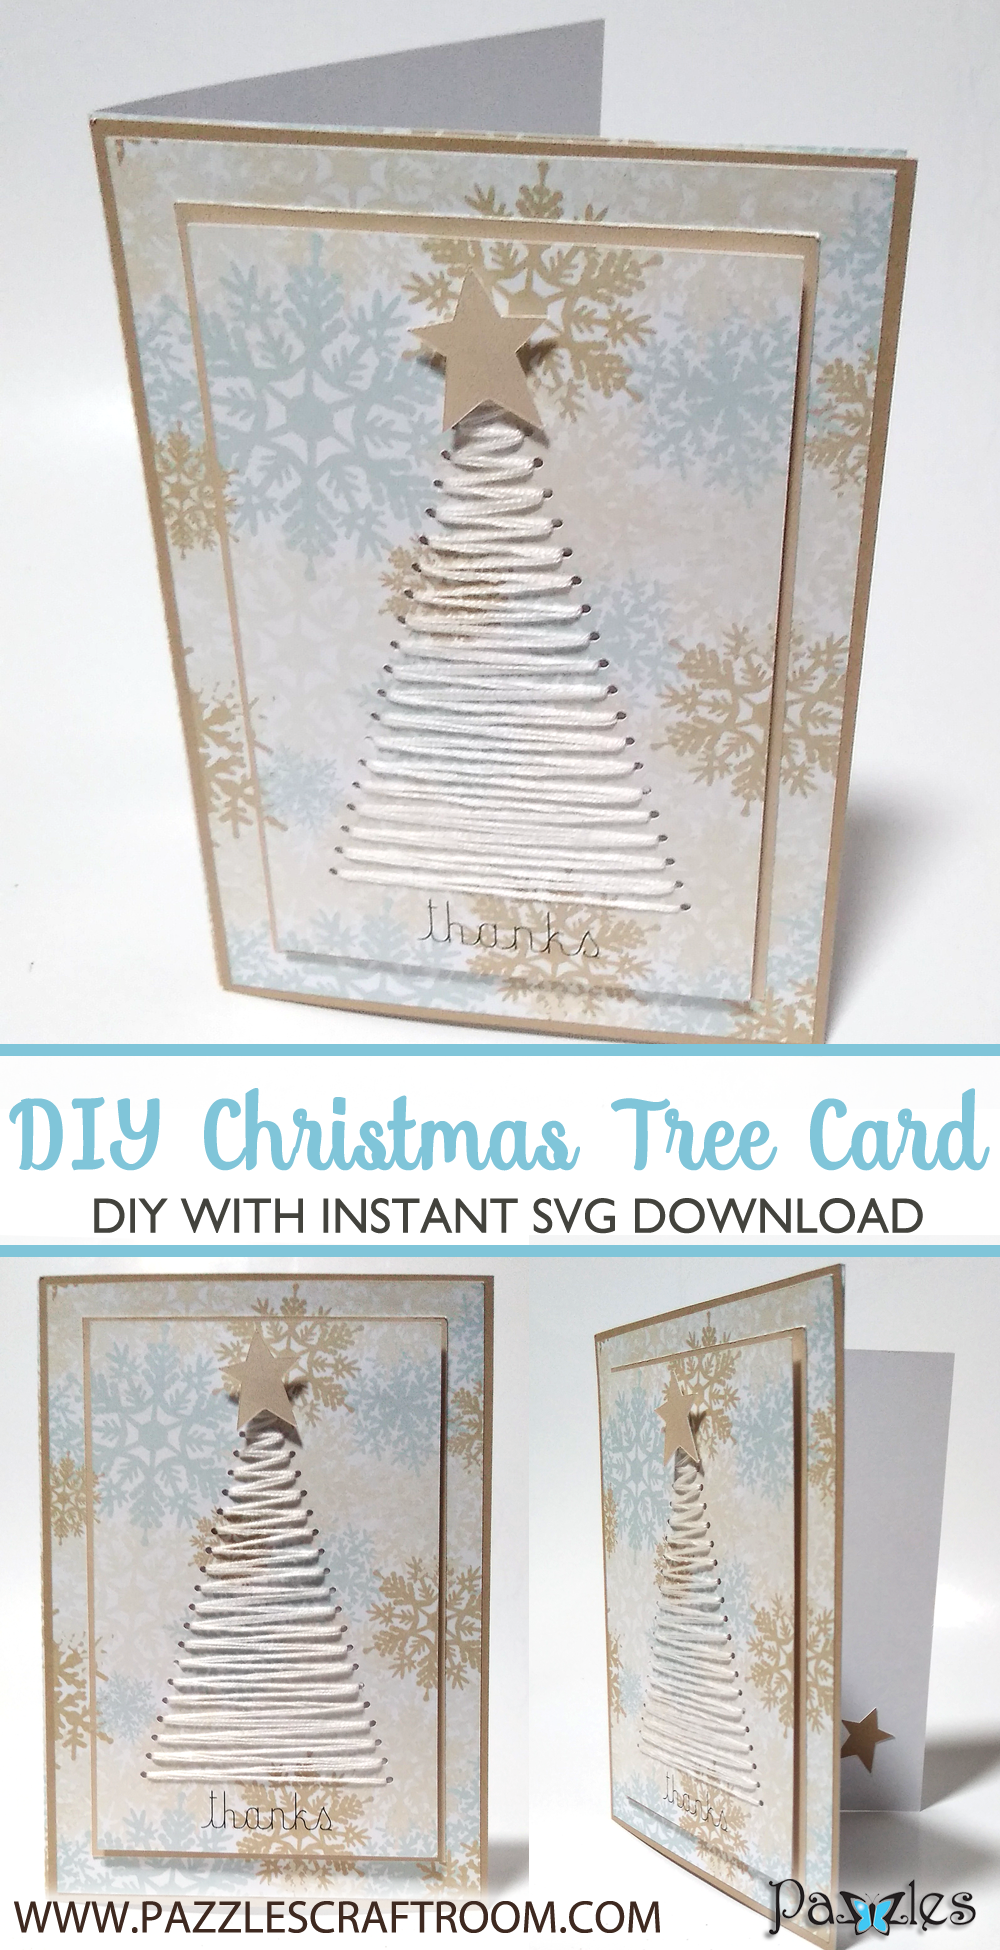 Pazzles DIY Christmas Tree Card with instant SVG download compatible with all major electronic cutters including Pazzles Inspiration, Cricut, and Silhouette Cameo. Design by Renee Smart.